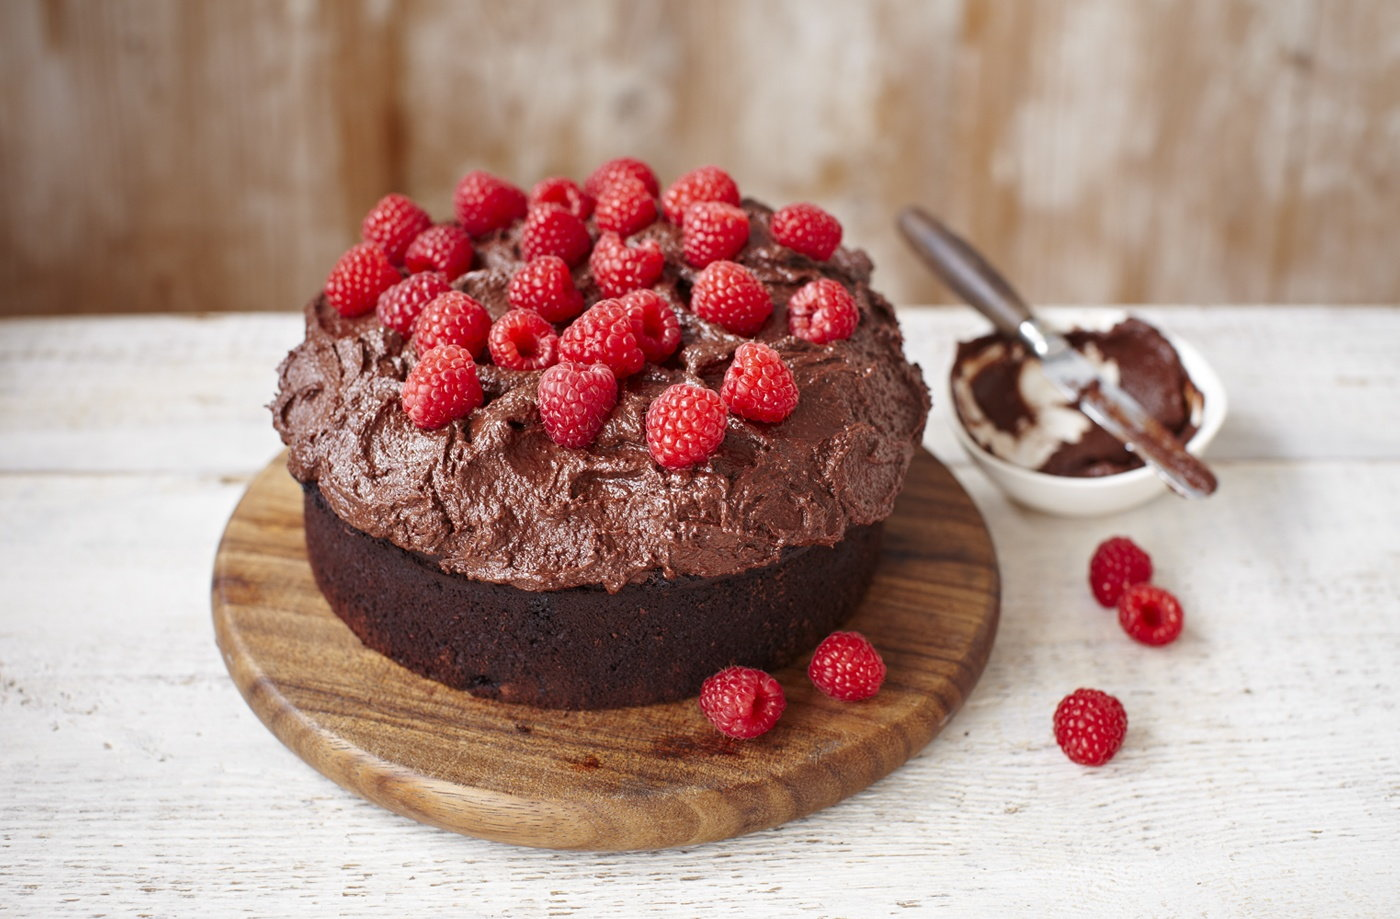 Chocolate Cake Recipe Uk Tesco: Vegan Chocolate Cake Recipe